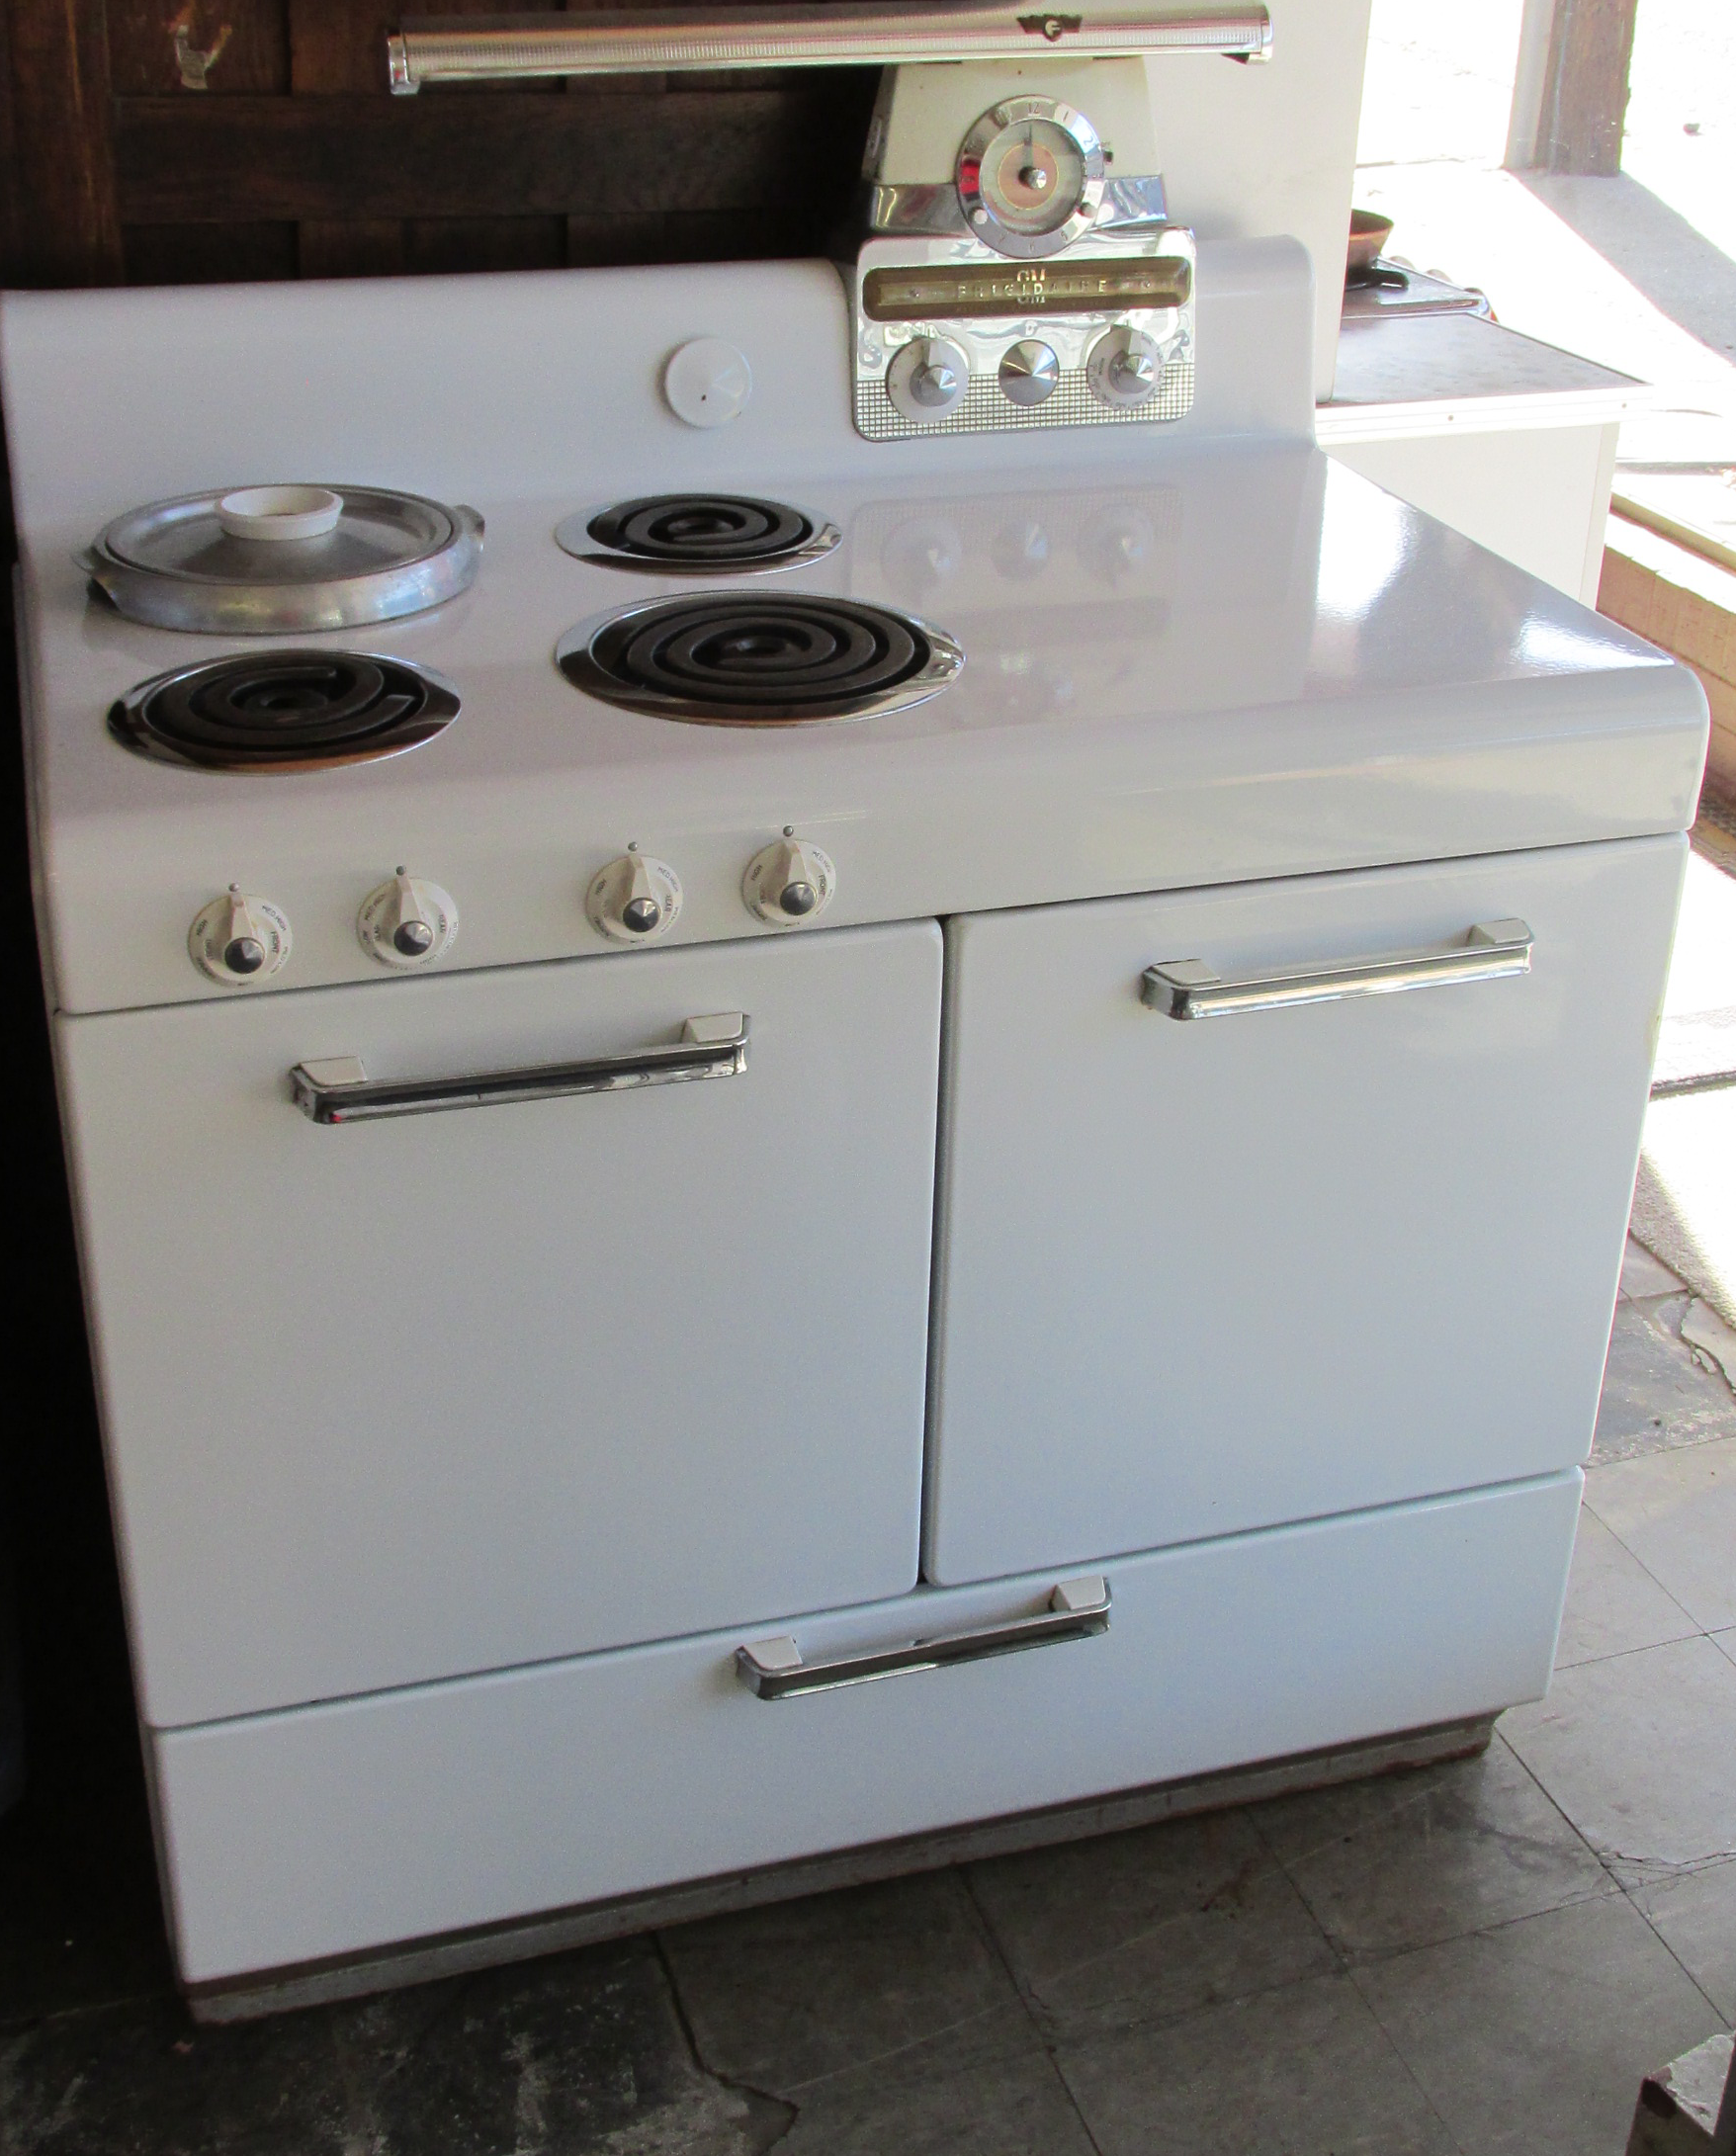 1947 Frigidaire Electric Stove | Stoves | Pinterest ...